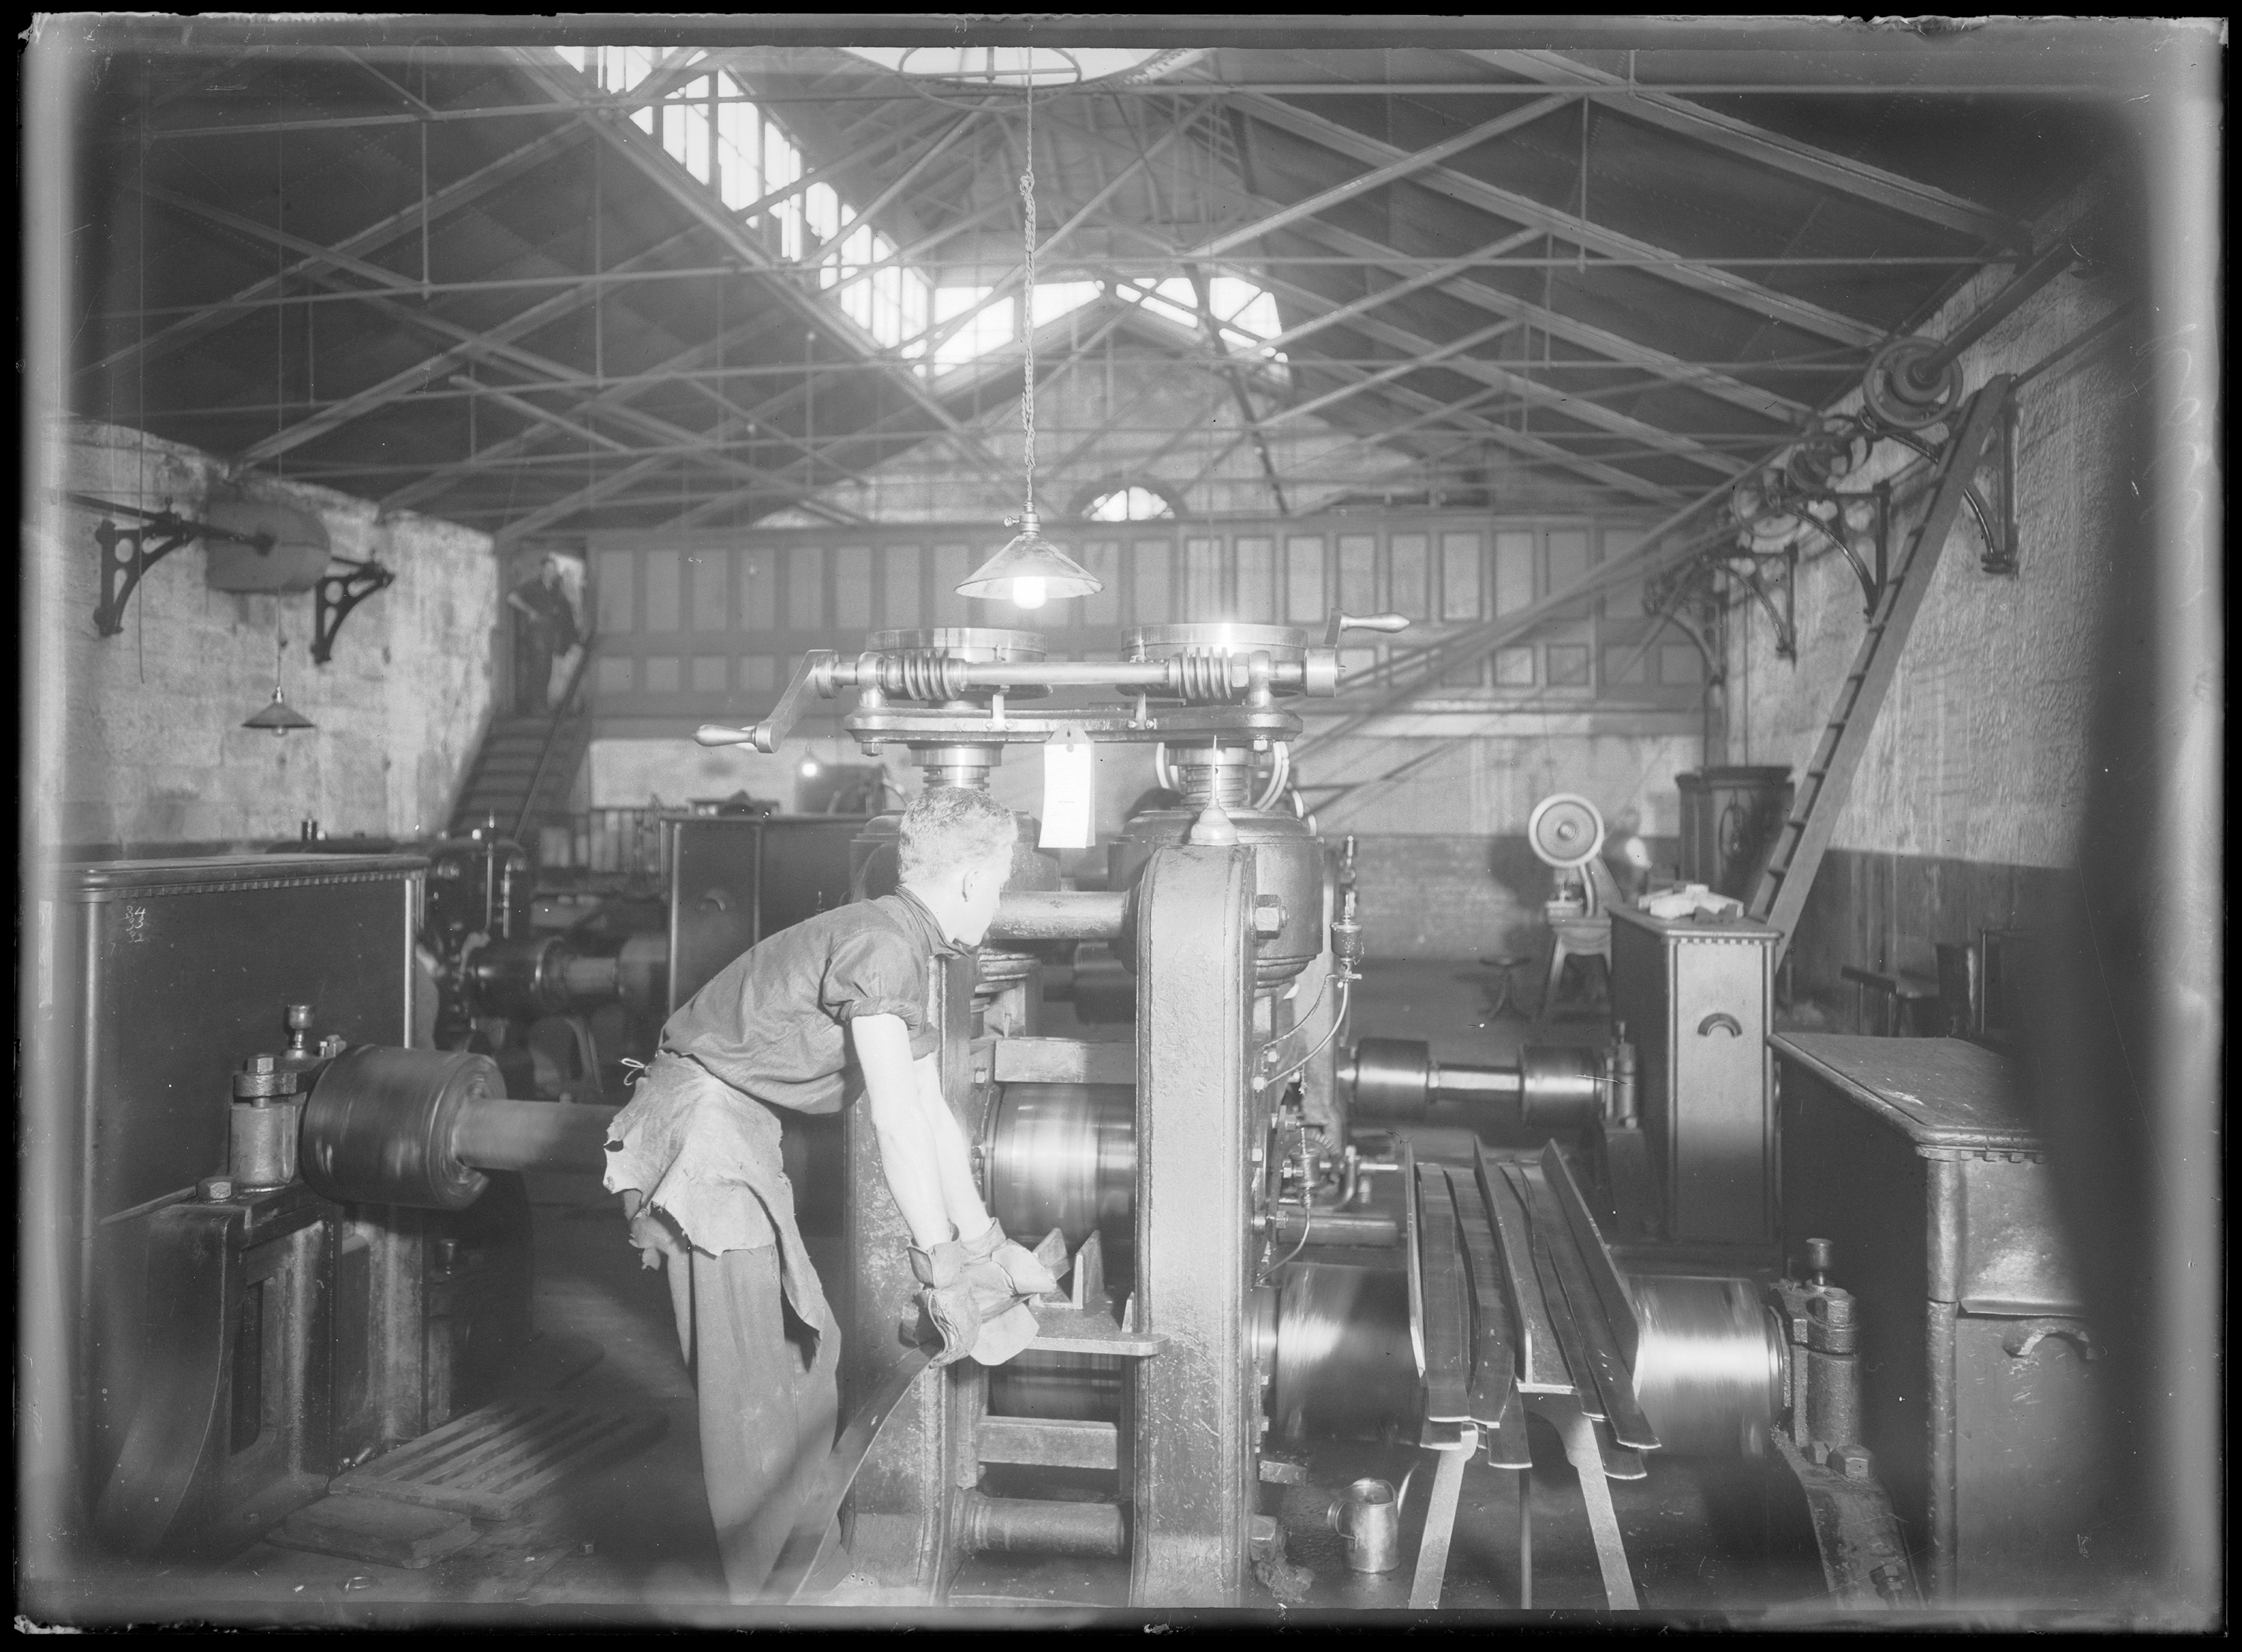 Black and white photo of a man working a coin press